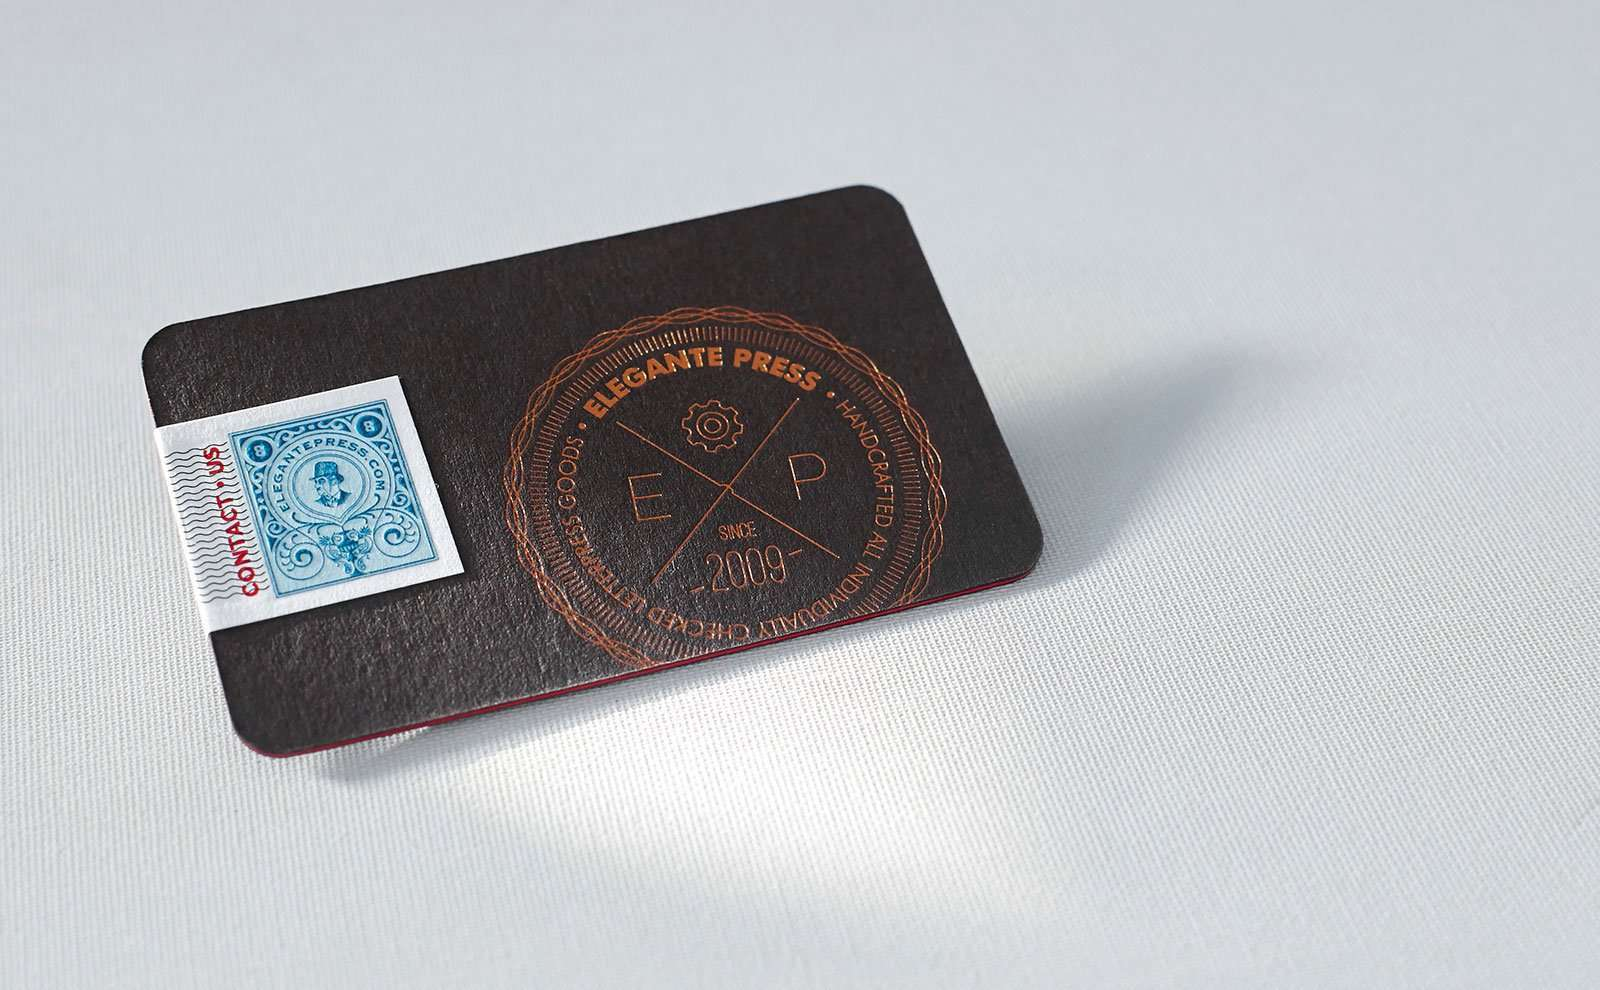 The most expensive business card we have printed yet | Elegante Press